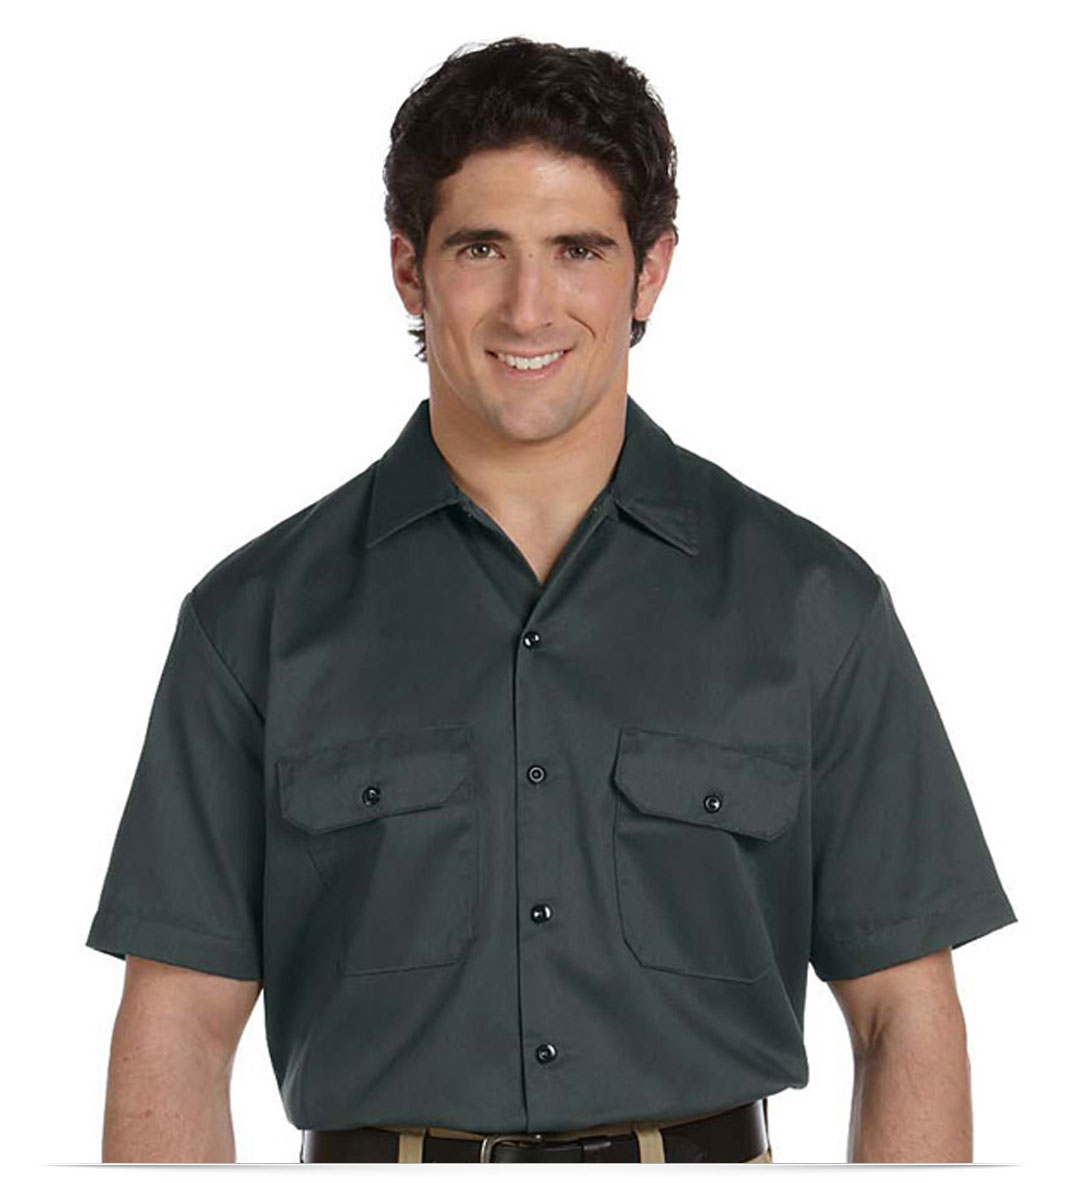 Personalized Dickies Work Shirt